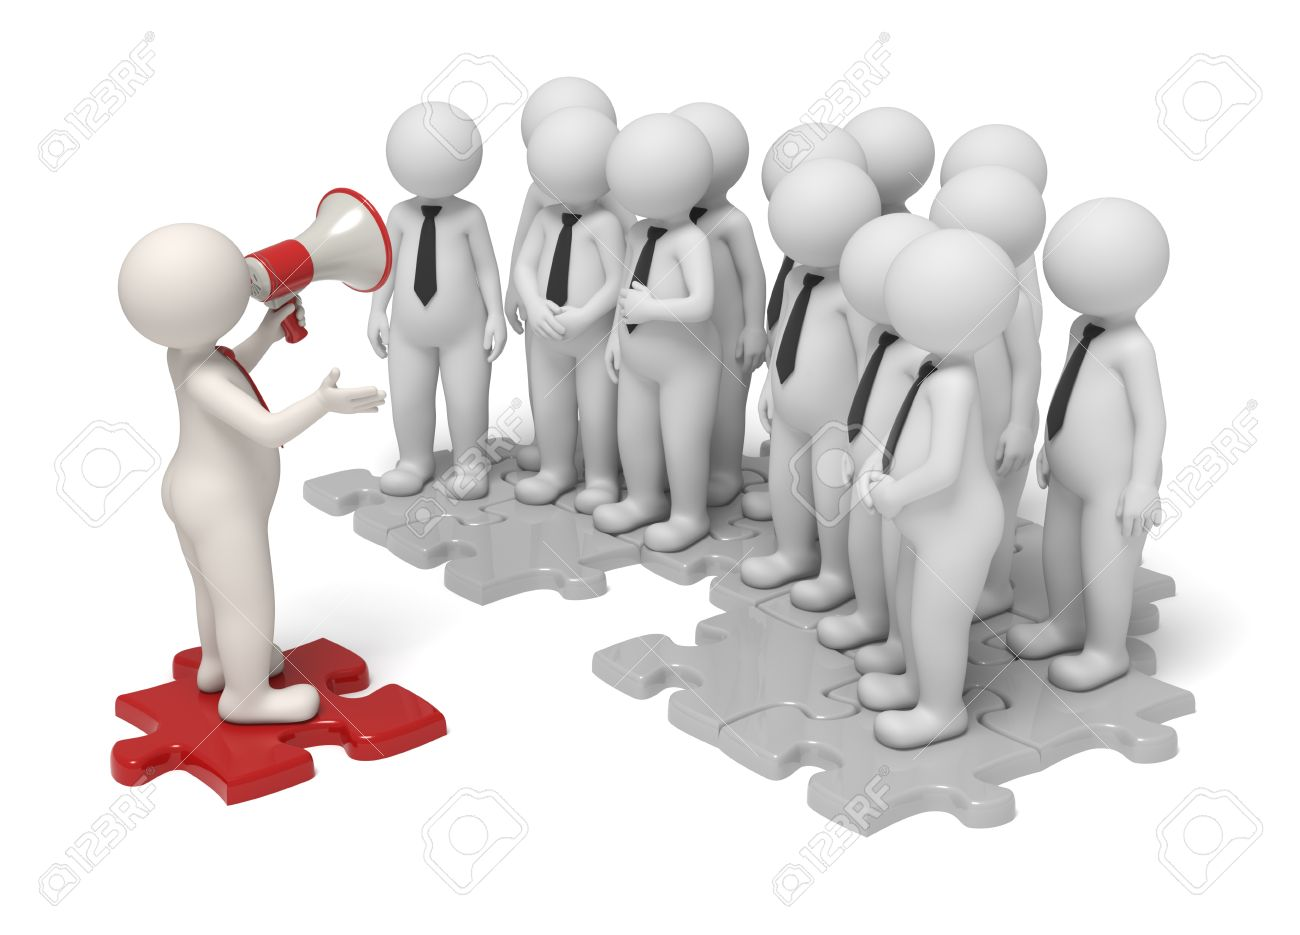 team leader stock vector illustration and royalty team team leader 3d leader making an announcement a red megaphone to his team